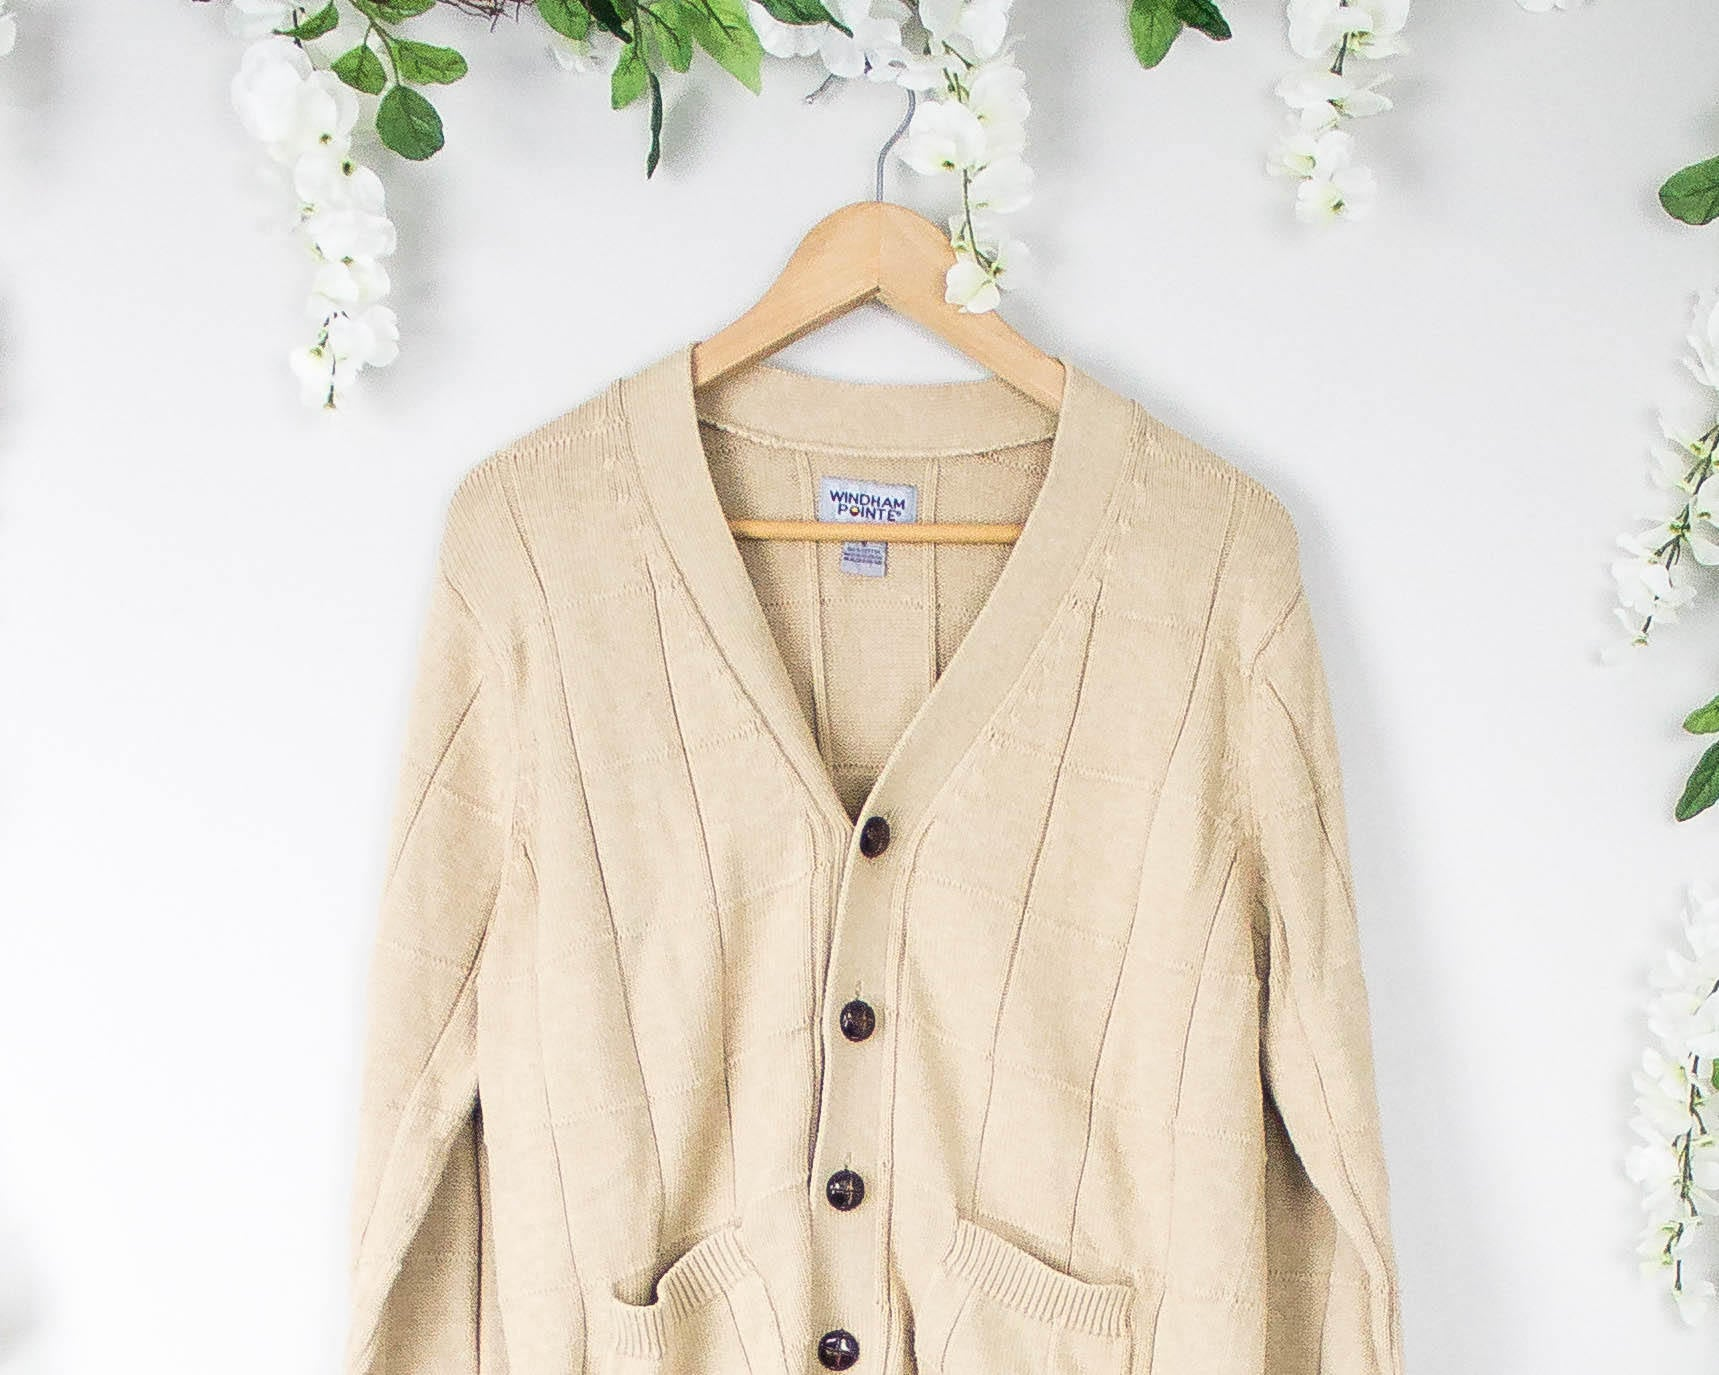 Vintage Nude Cardigan Knit Sweater